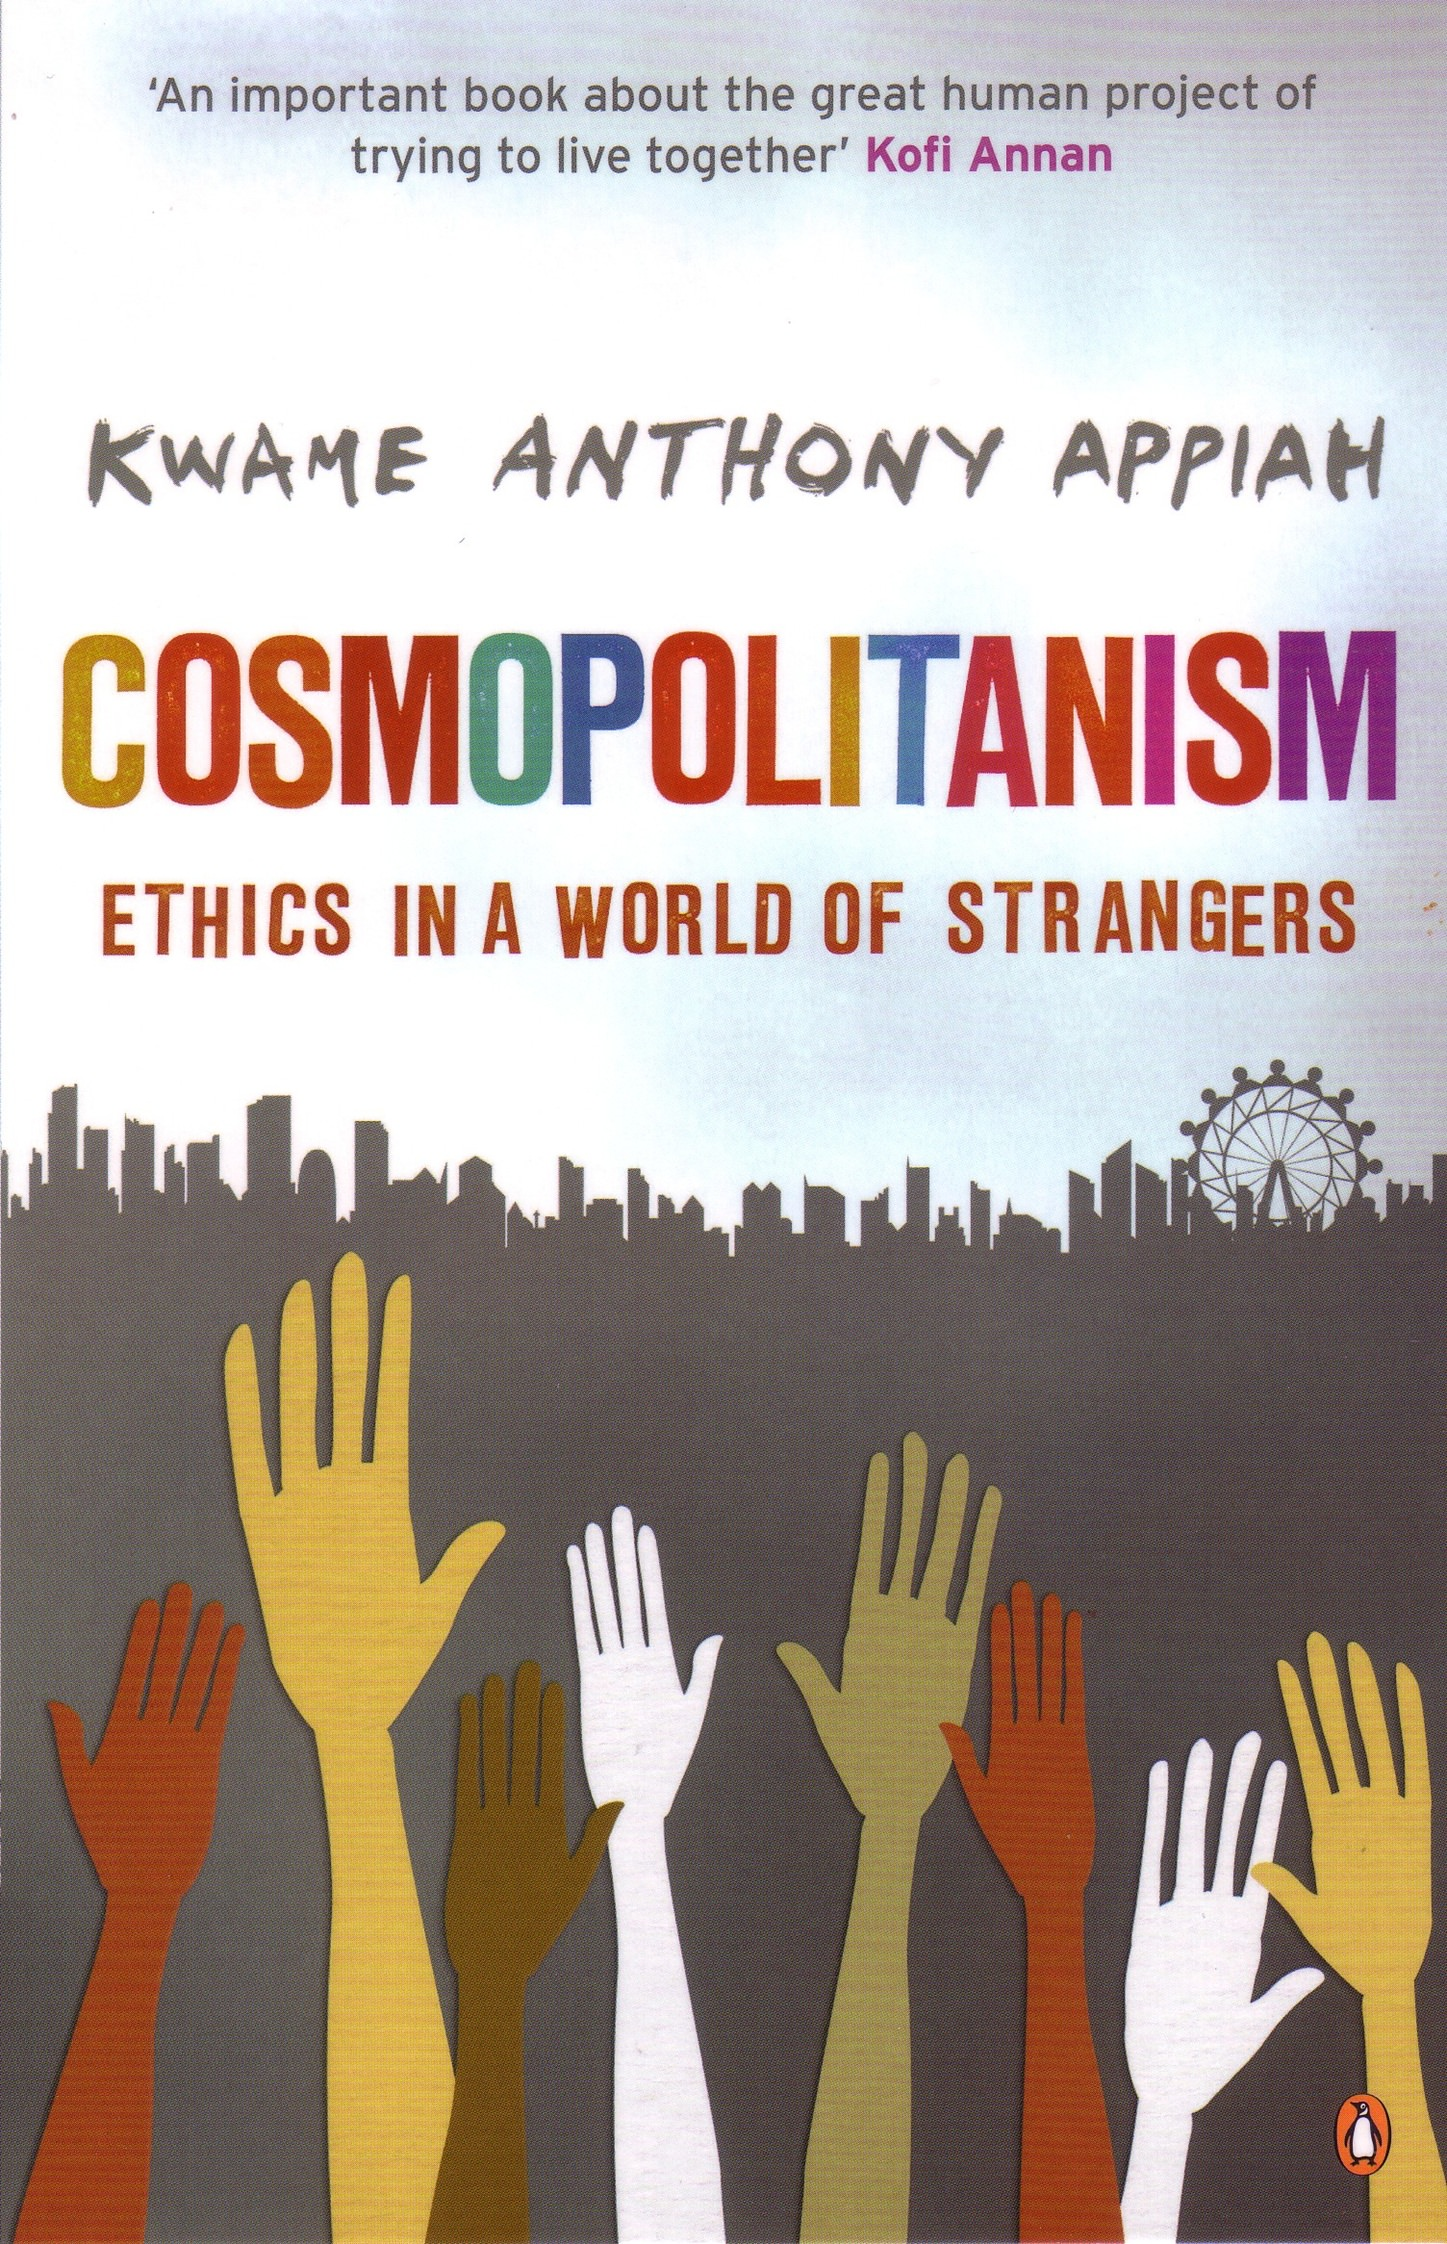 kwame anthony appiah s cosmopolitanism Sophie botros finds cosmopolitanism, kwame anthony appiah's optimistic account of facts and values, a refreshing antidote to today's scare-mongering pessimism.